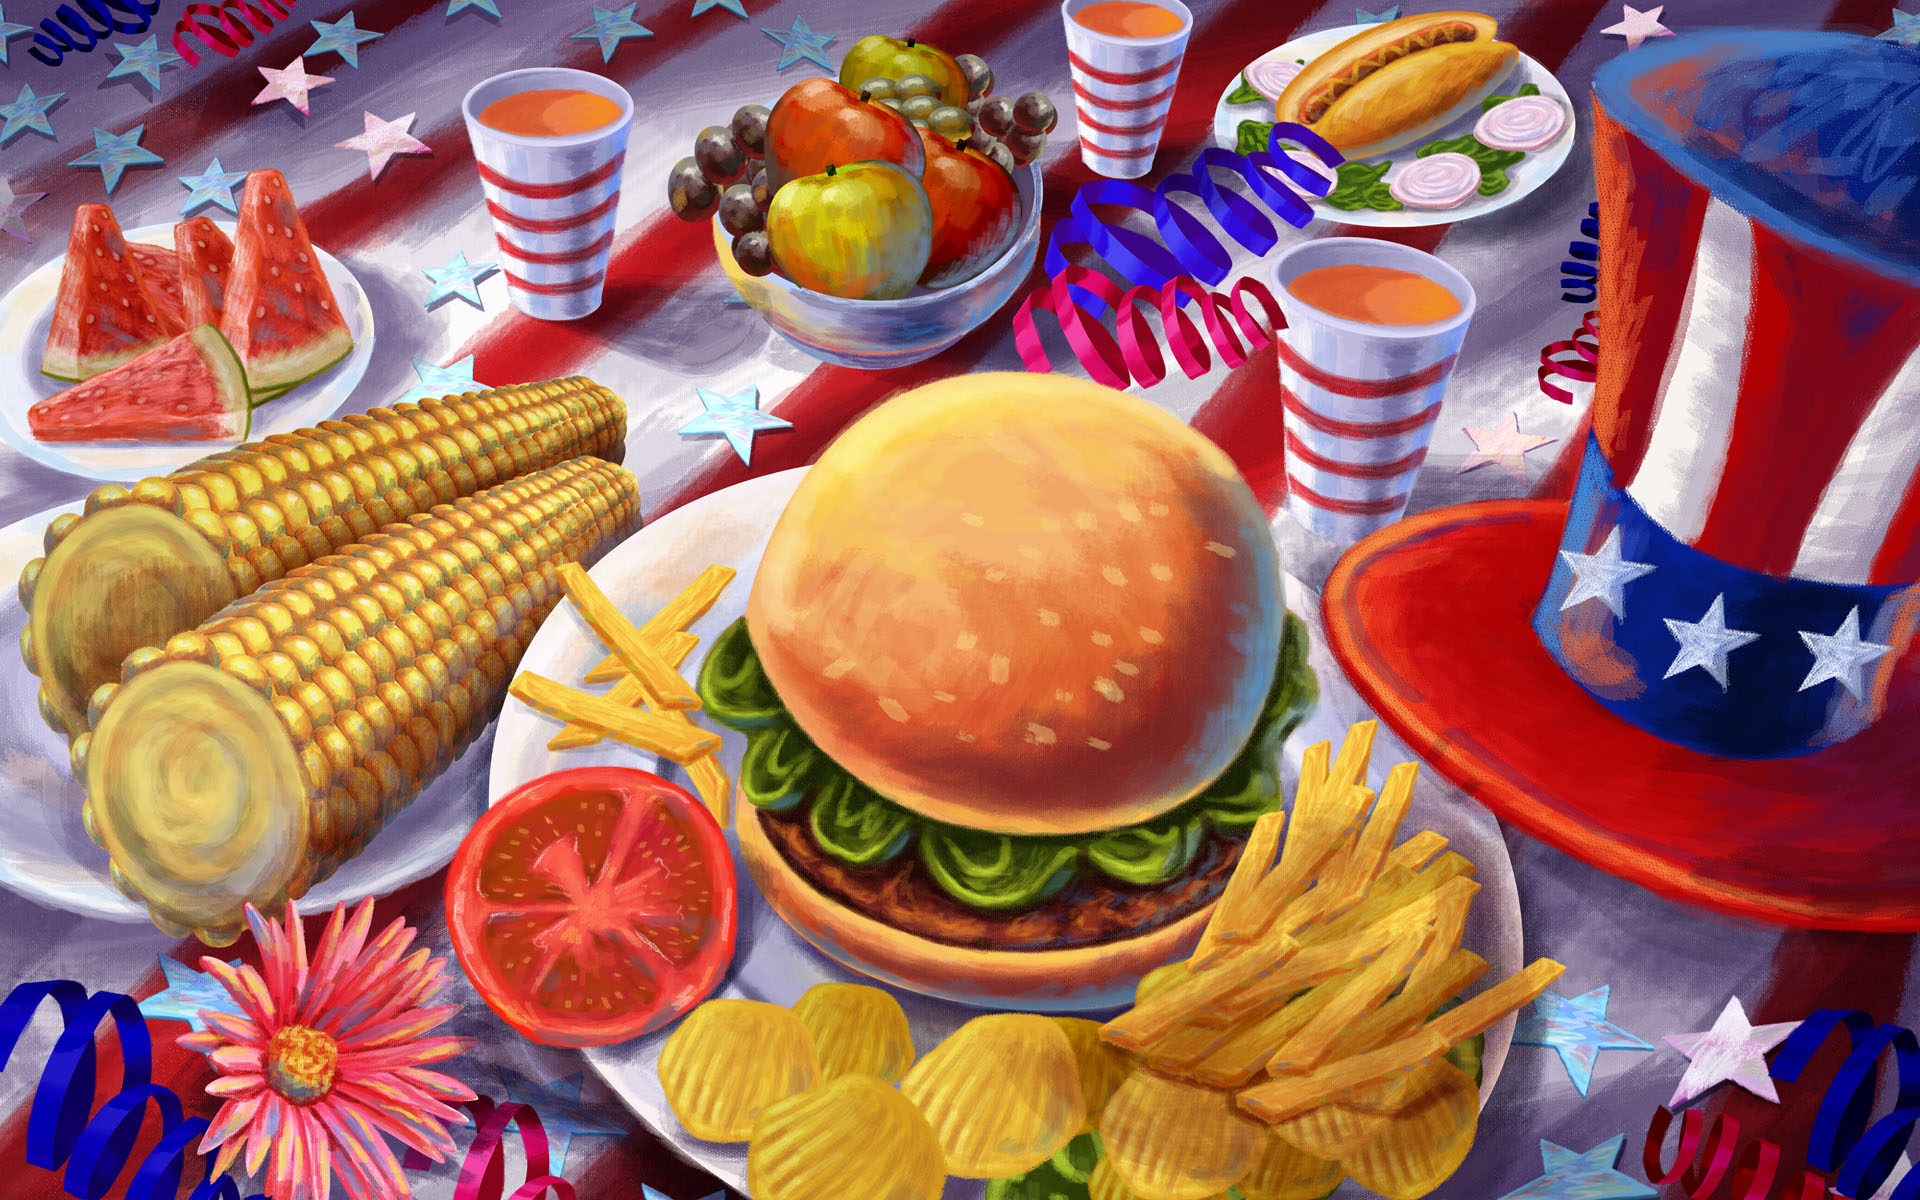 Nibbles Of Tidbits A Food BlogHoliday Ideas Archives Nibbles Of - United states of america cuisine